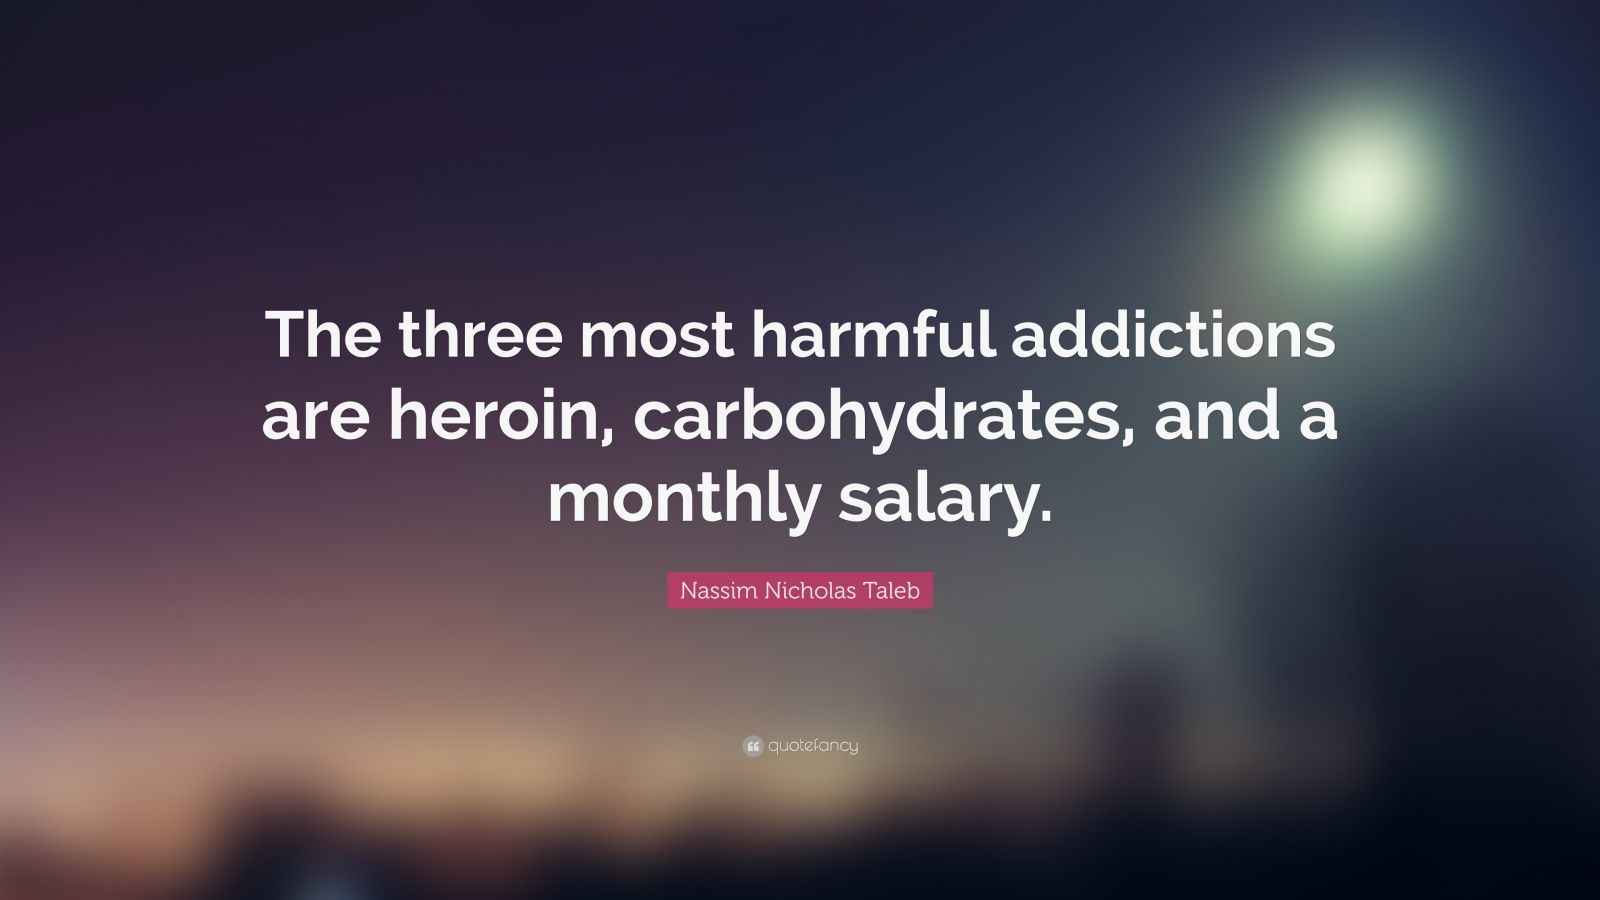 """Nassim Nicholas Taleb Quote: """"The three most harmful addictions are heroin, carbohydrates, and a monthly salary."""""""